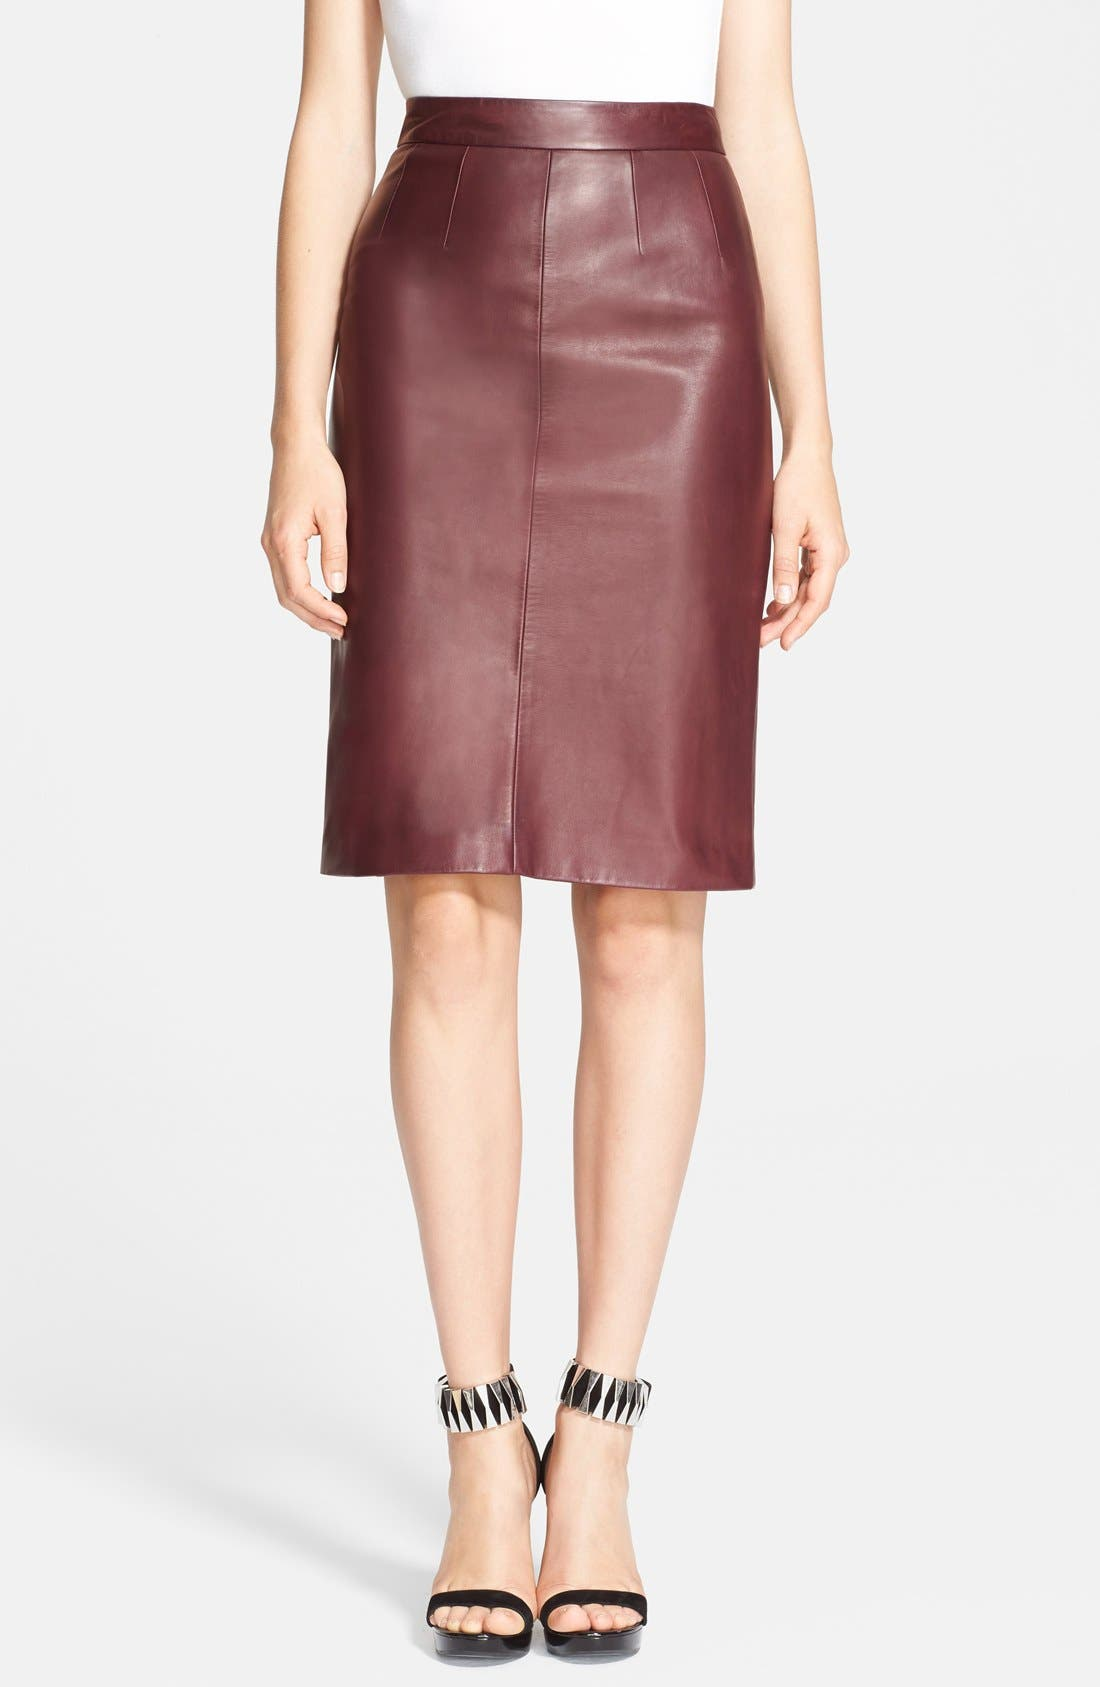 Alternate Image 1 Selected - Alexander McQueen Leather Pencil Skirt